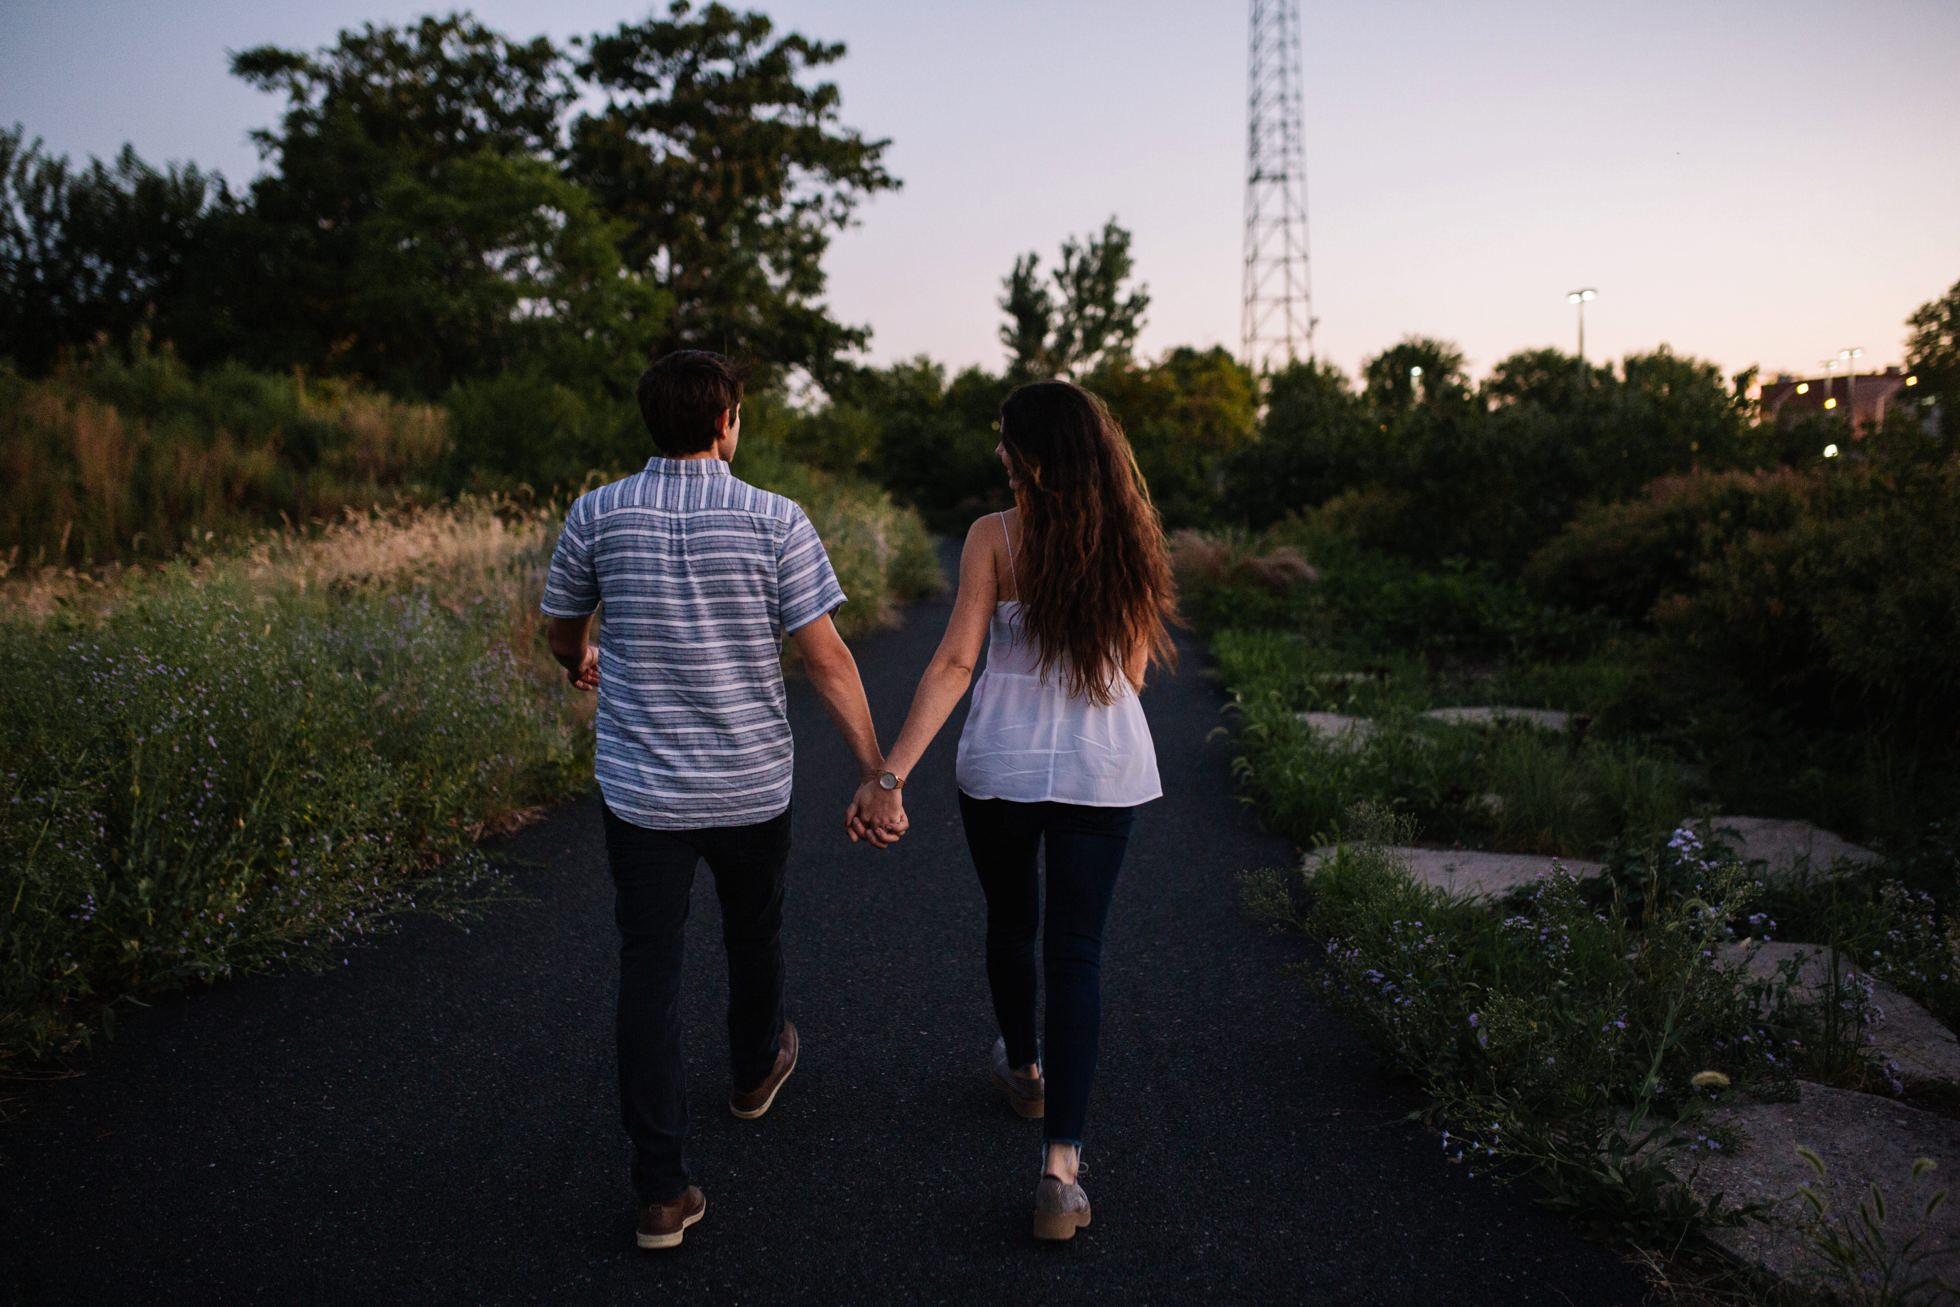 south-philly-sunset-engagement-photos-neon-0027